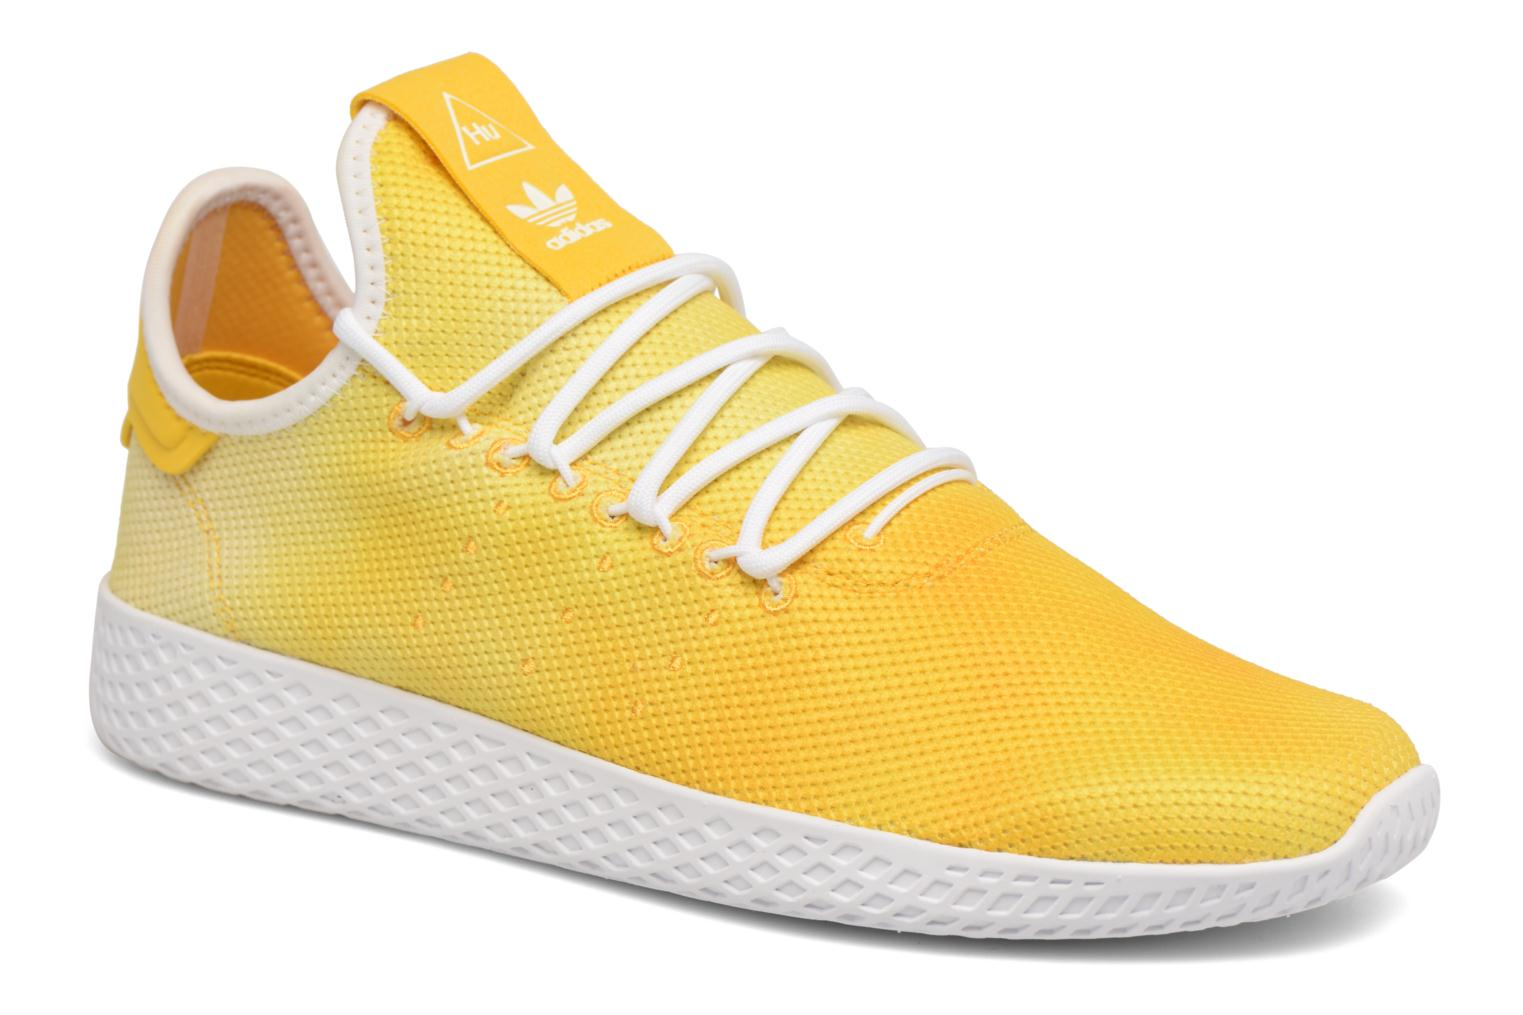 Marques Chaussure homme Adidas Originals homme Pharrell Williams Hu Holi Tennis Hu Ftwbla/Ftwbla/Ftwbla